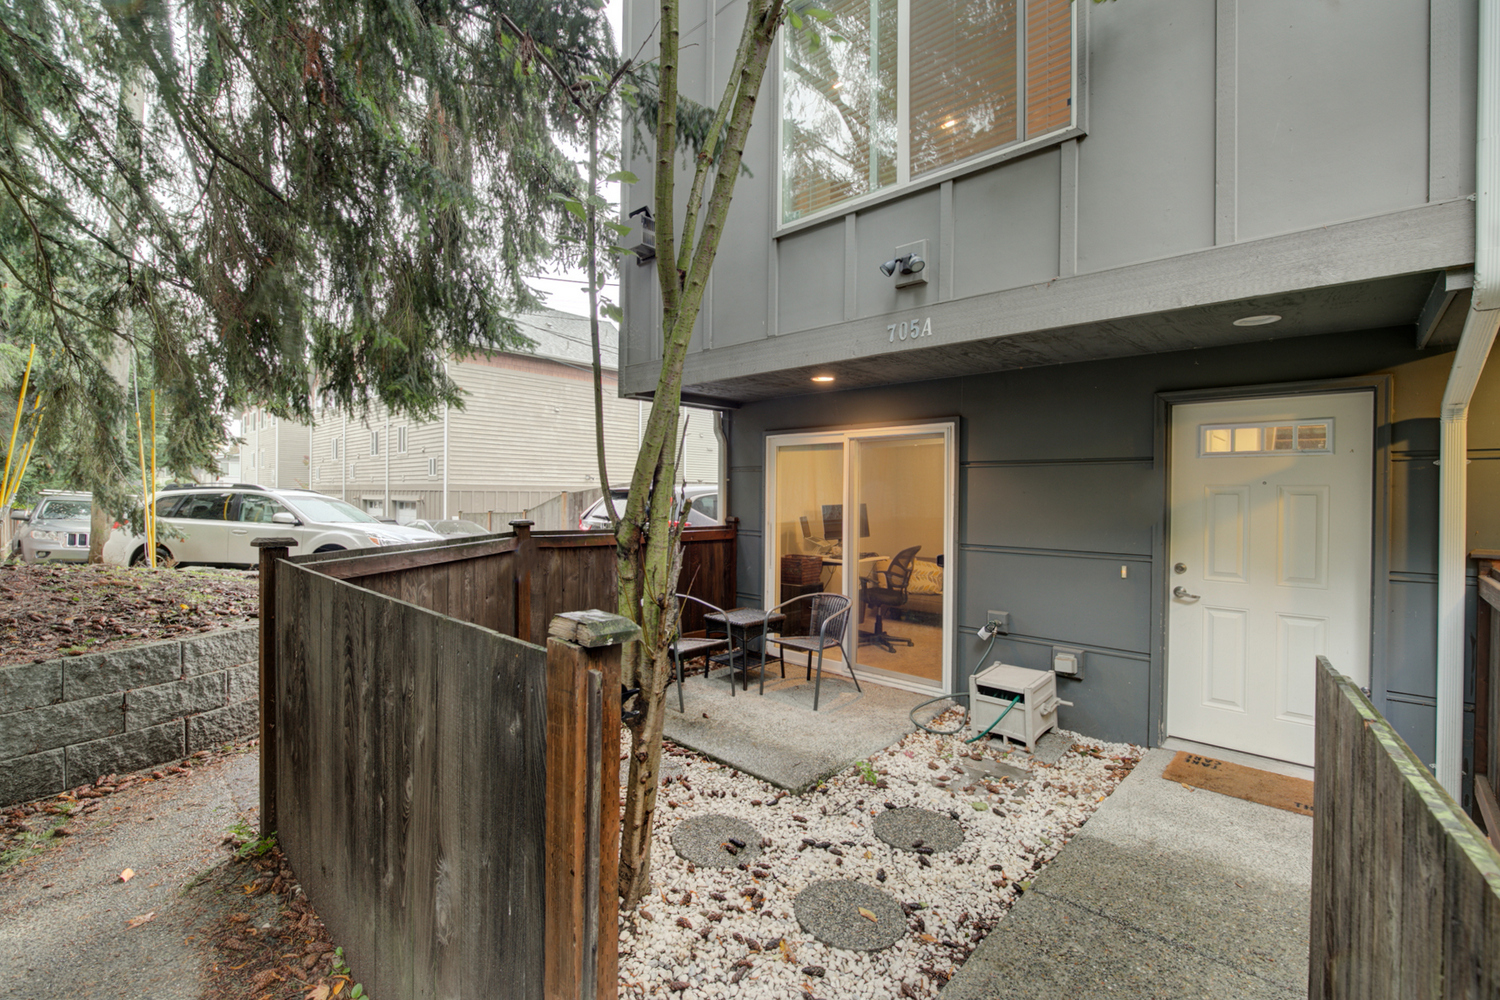 Greenwood Seattle Modern Townhome For Rent | RE/MAX Integrity Property Management